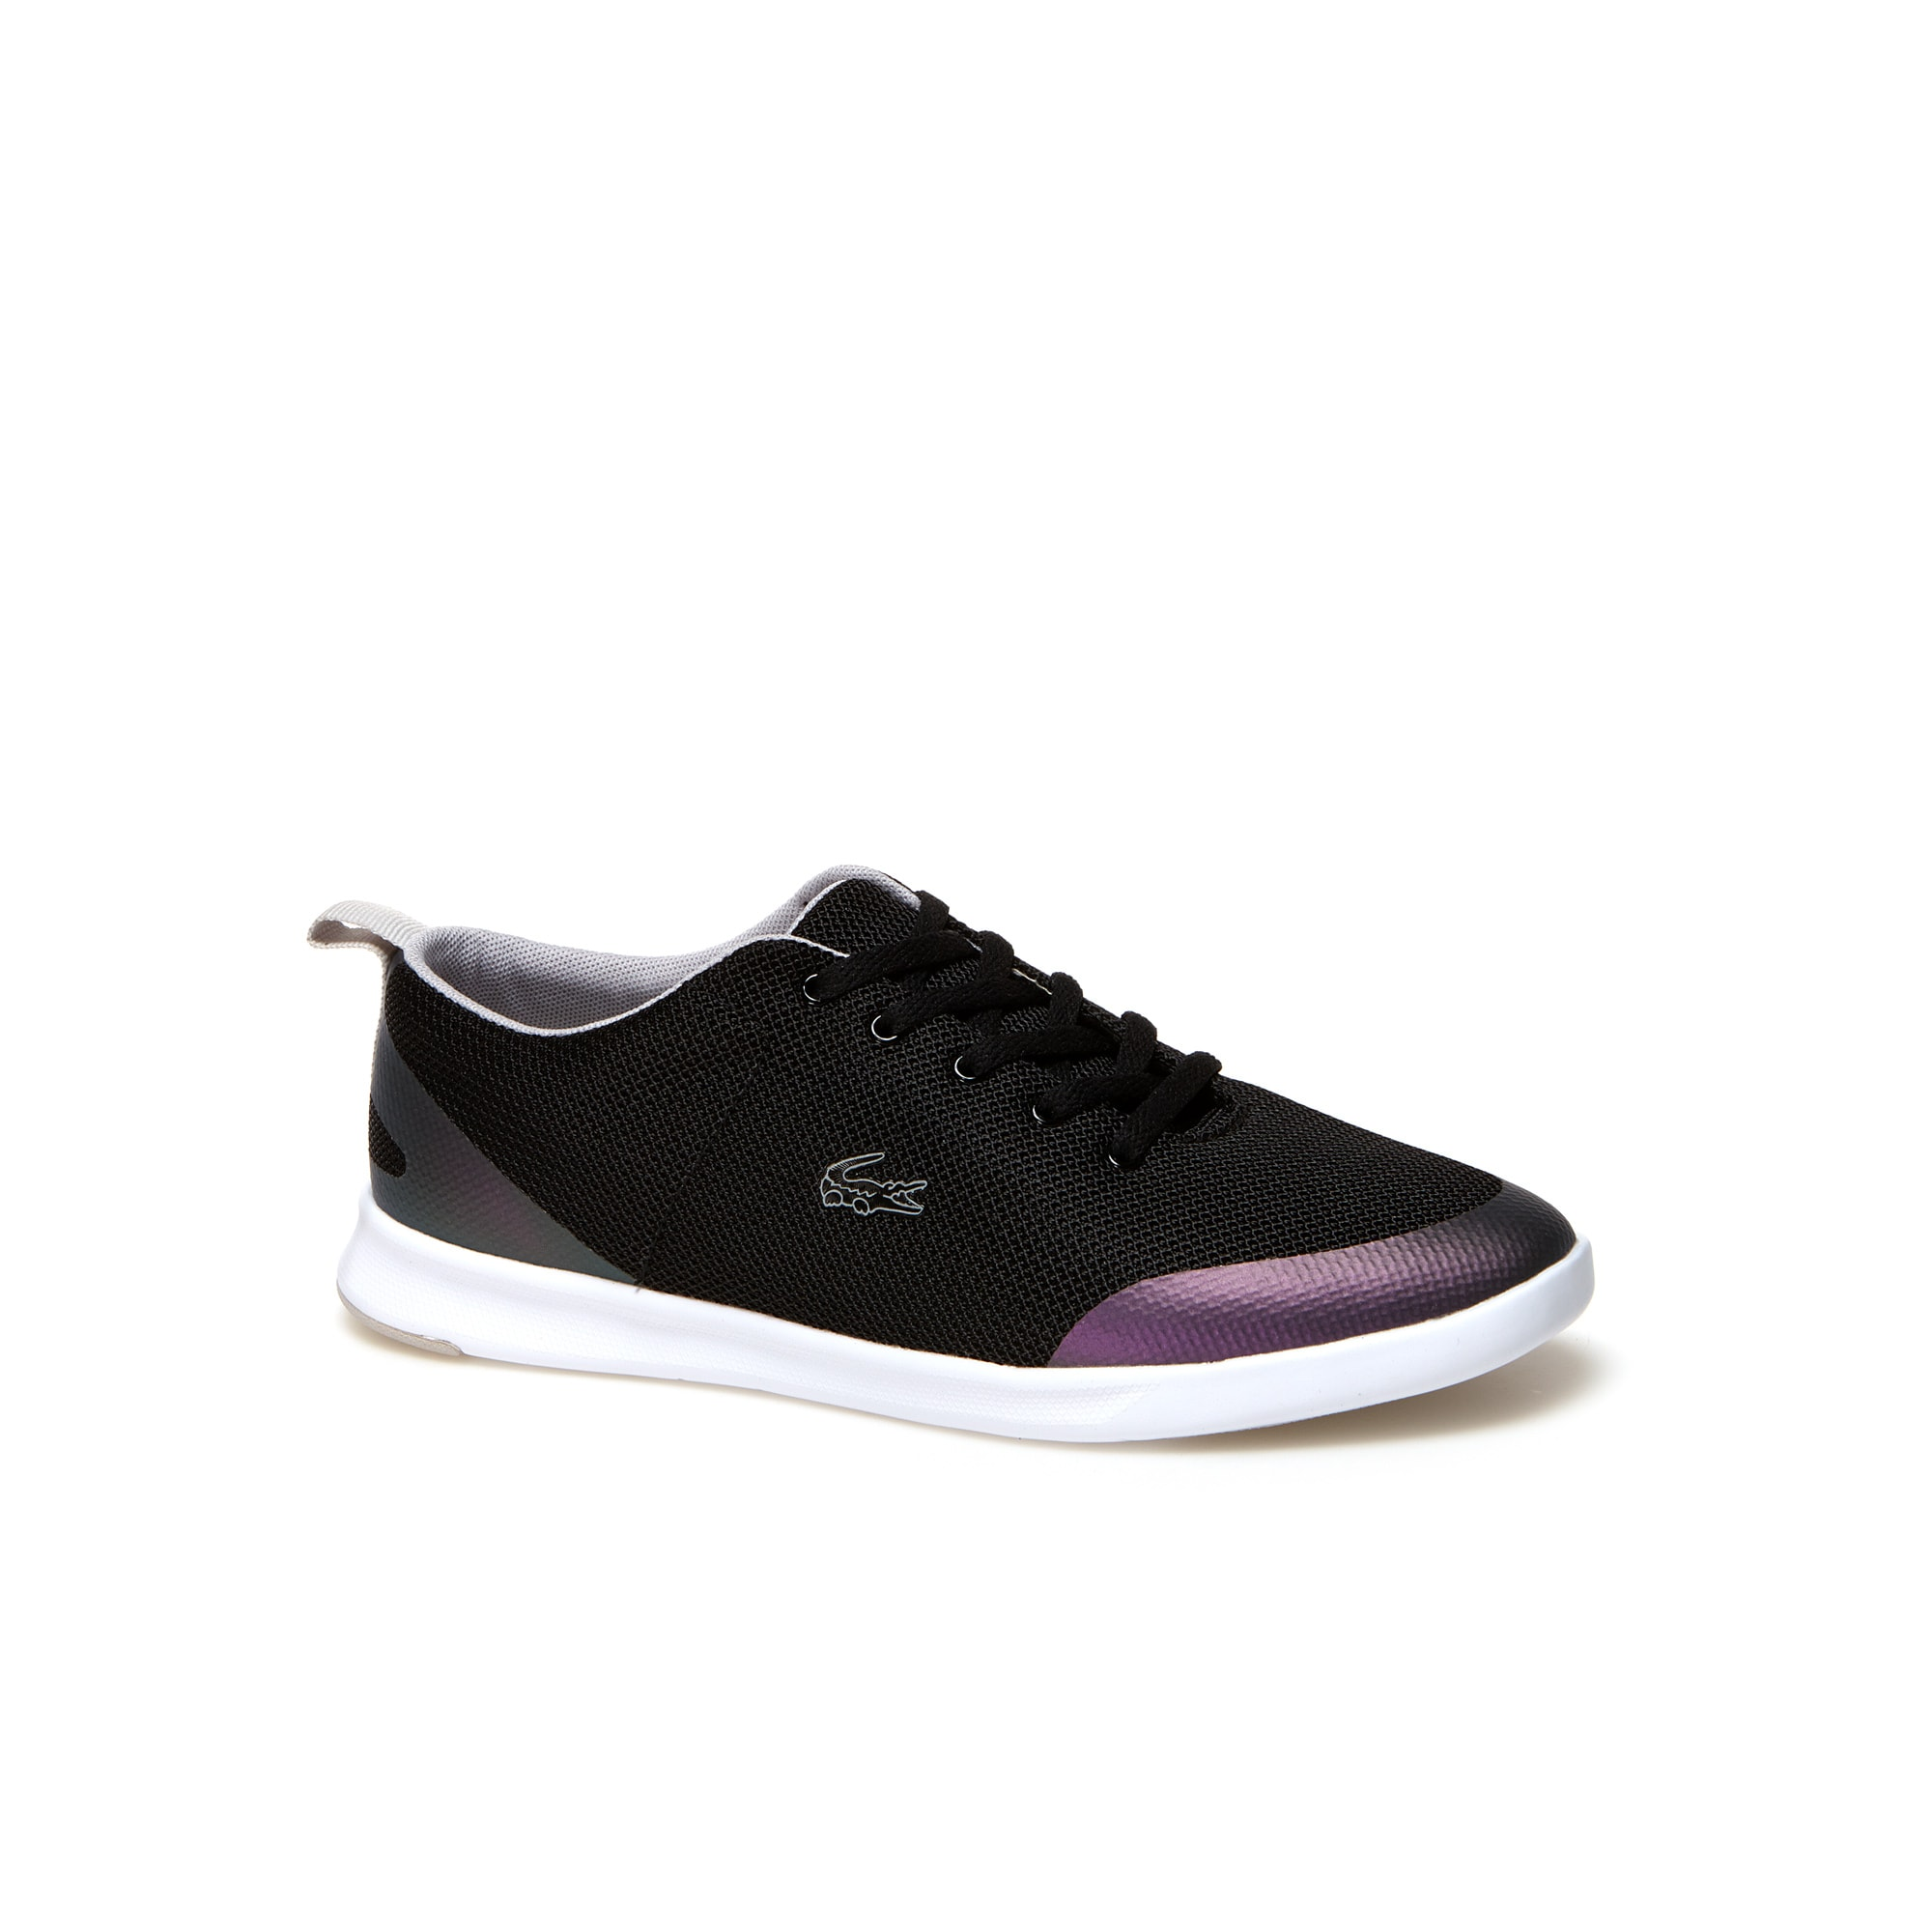 Women's Avenir Plain Textile Trainers